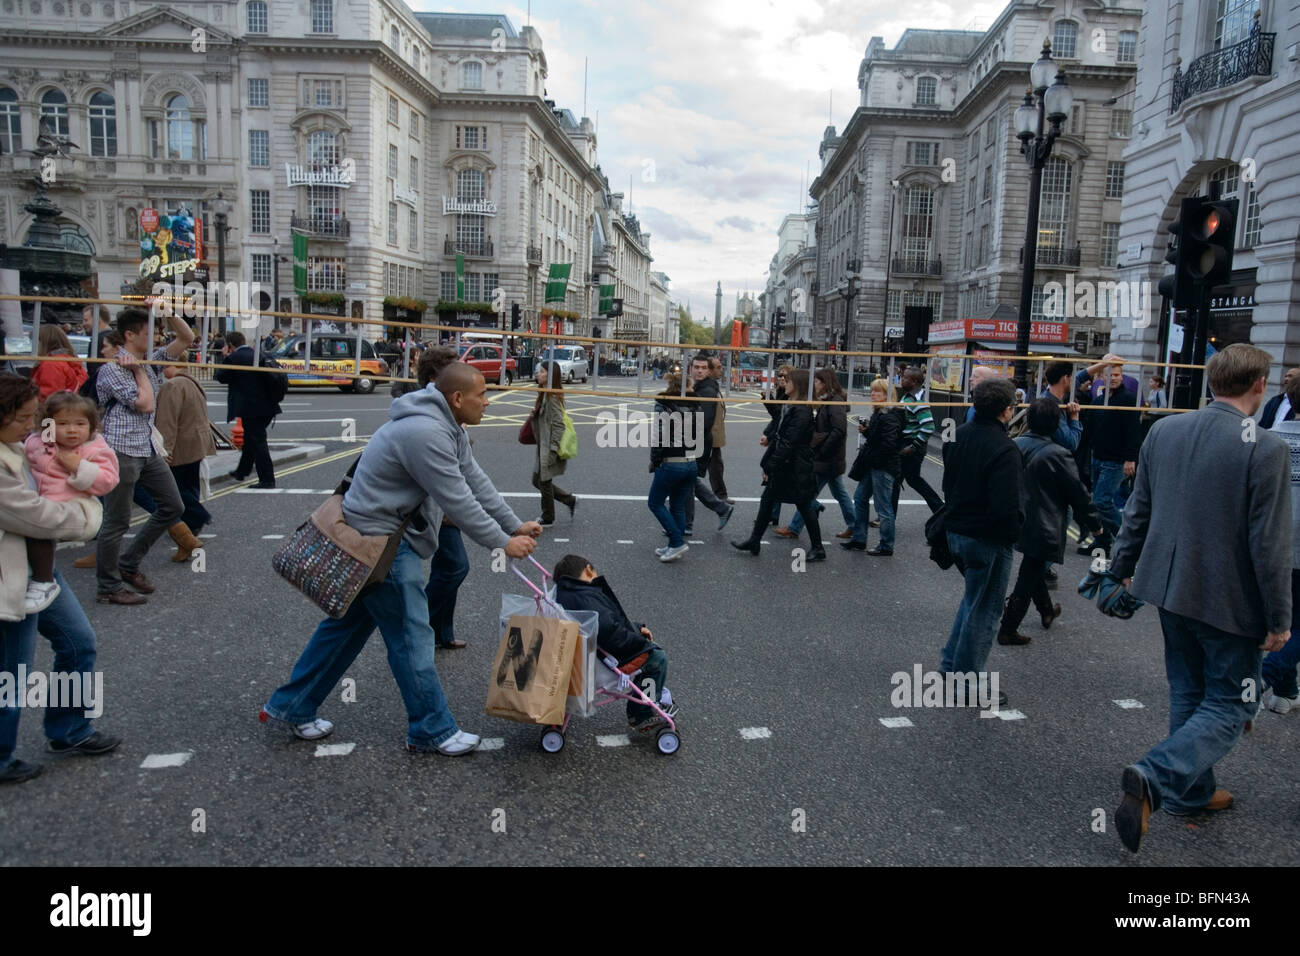 a man with a long ladder crosses the street at piccadilly circus in london - Stock Image